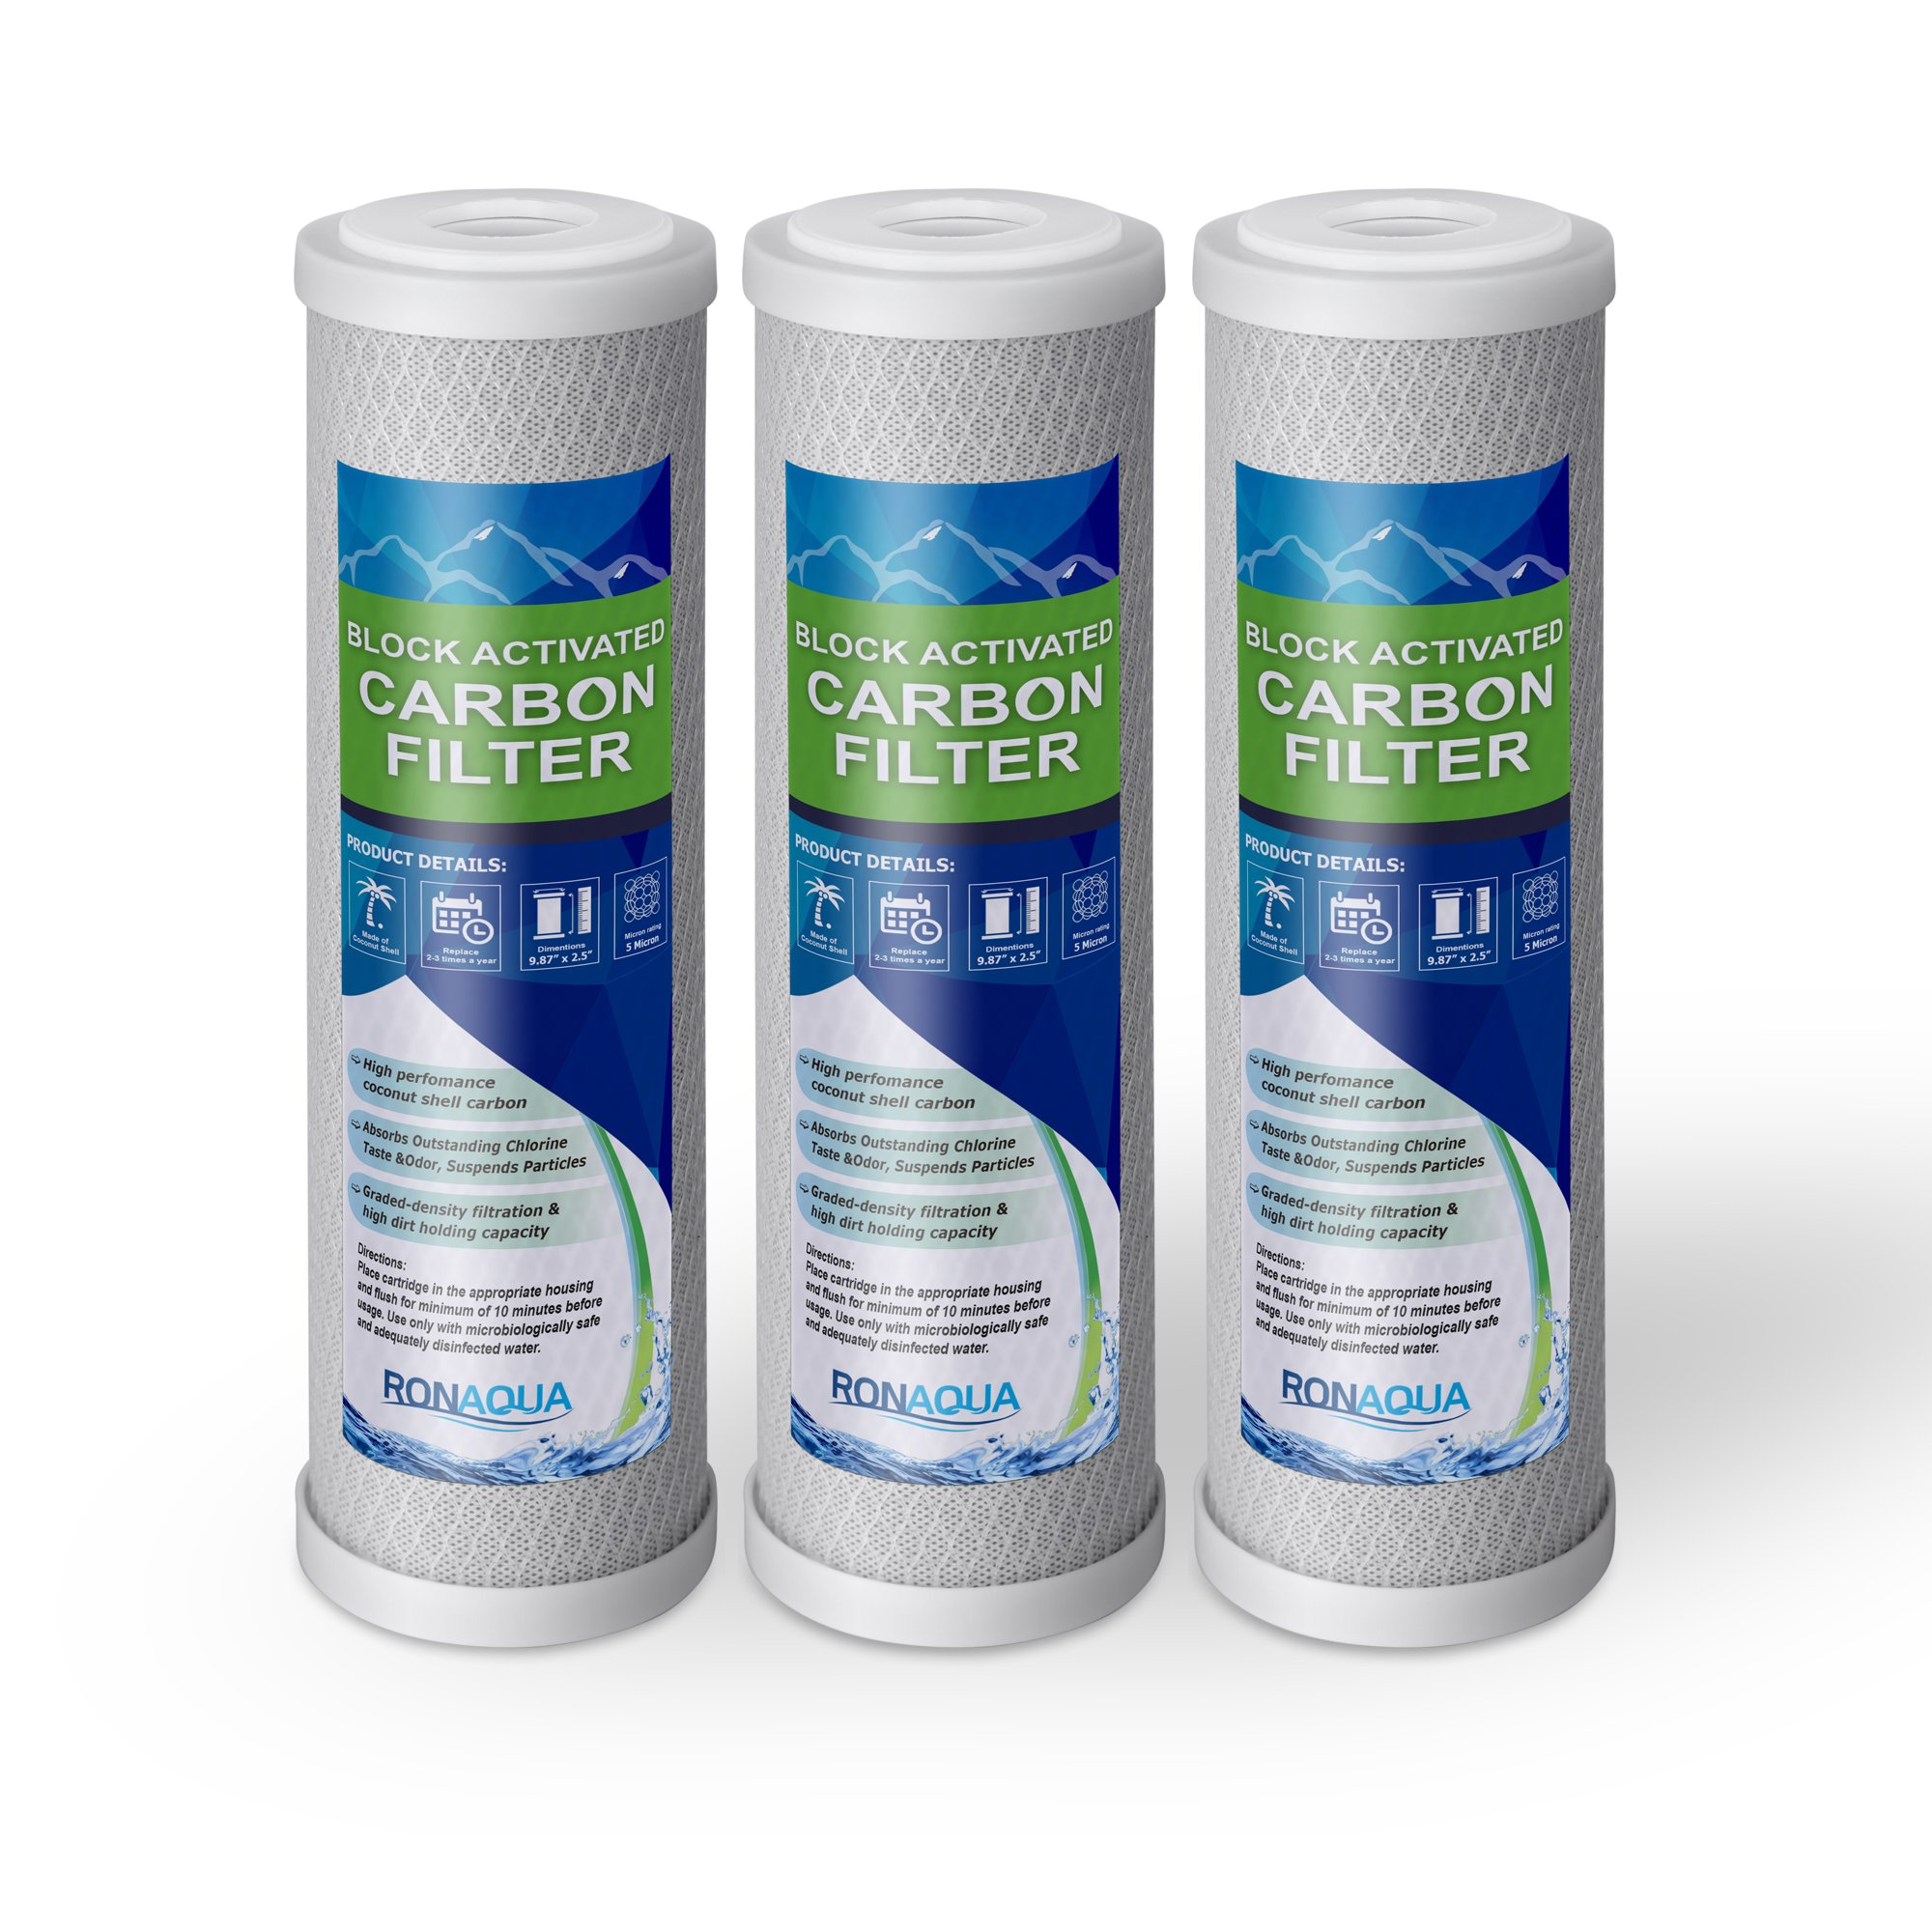 """Block Activated Carbon Coconut Shell Water Filter Cartridge 5 Micron for RO & Standard 10"""" Housing WELL-MATCHED with WFPFC8002, WFPFC9001, WHCF-WHWC, WHEF-WHWC, FXWTC, SCWH-5 (3 Pack)"""